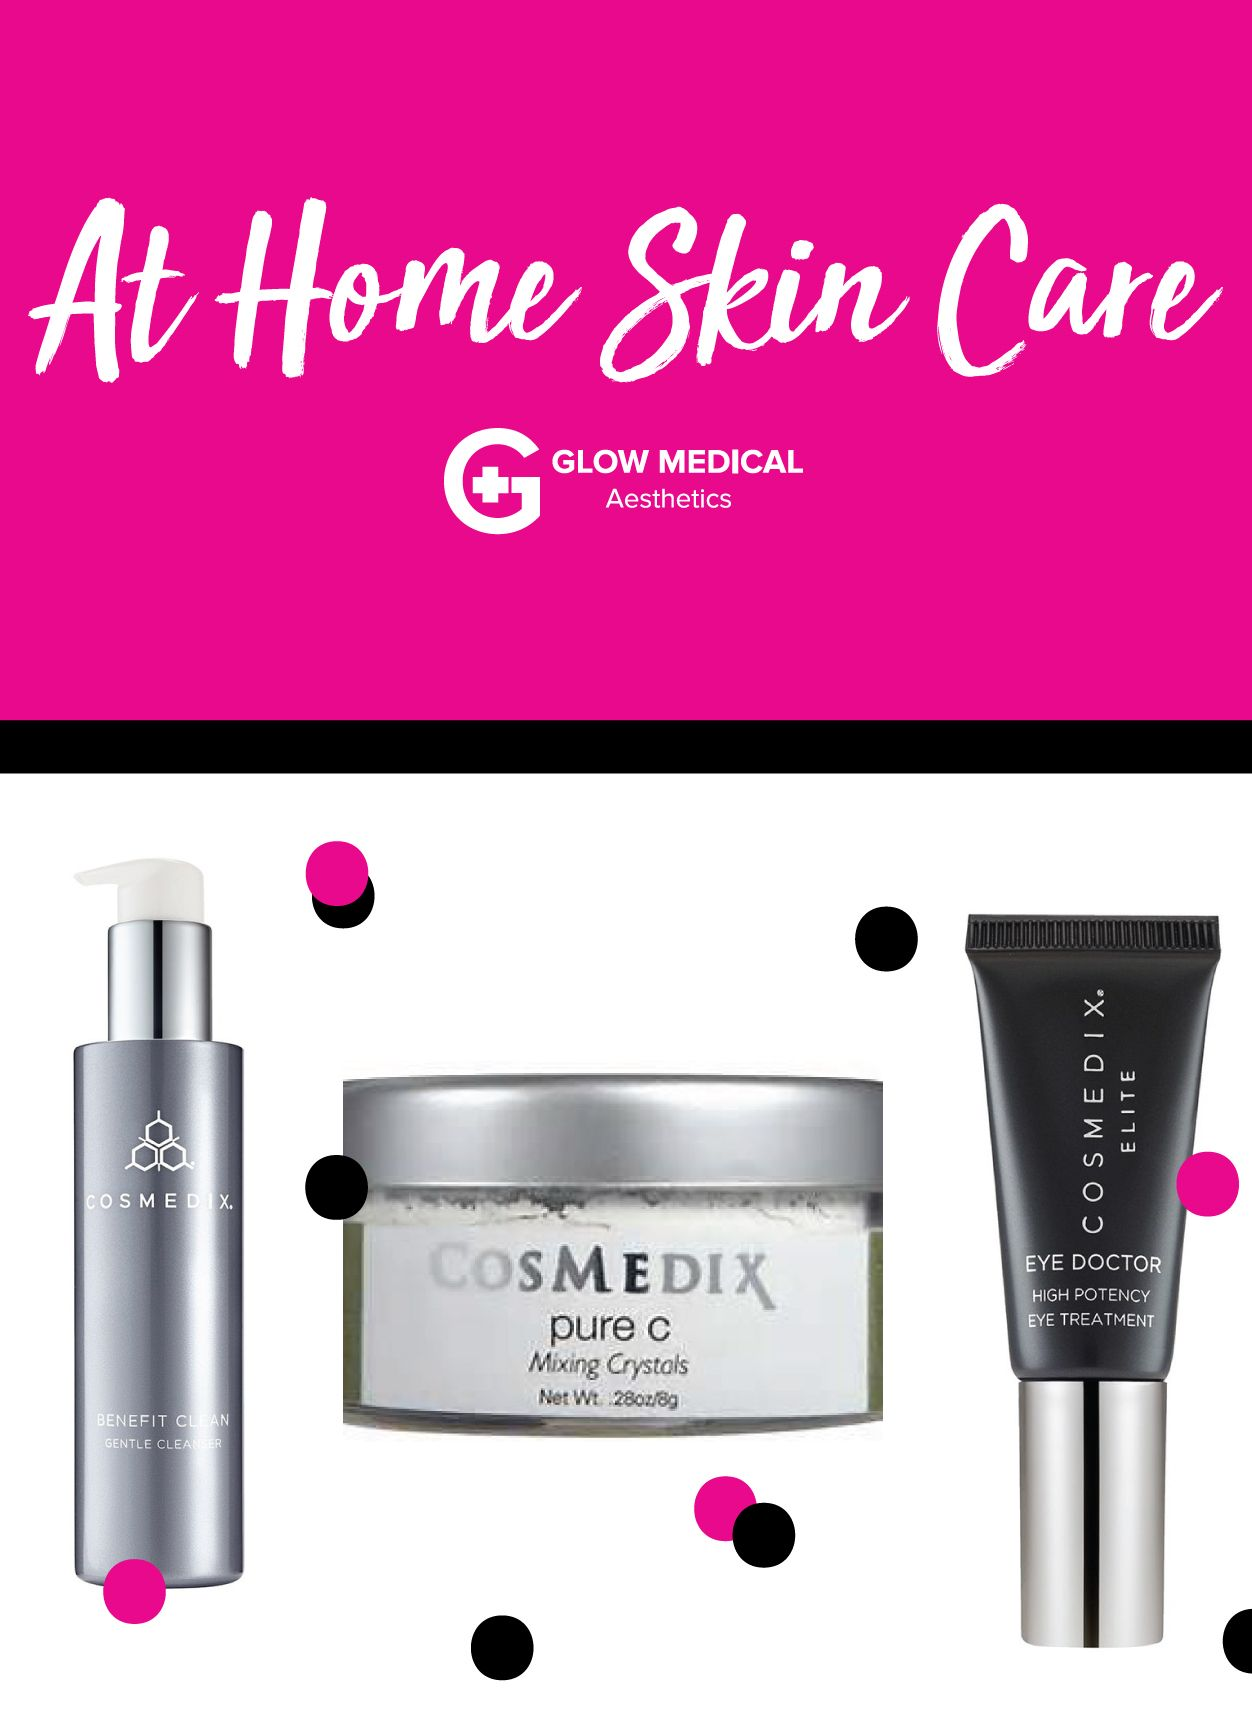 Skin Care At Home Skin care, Medical aesthetic